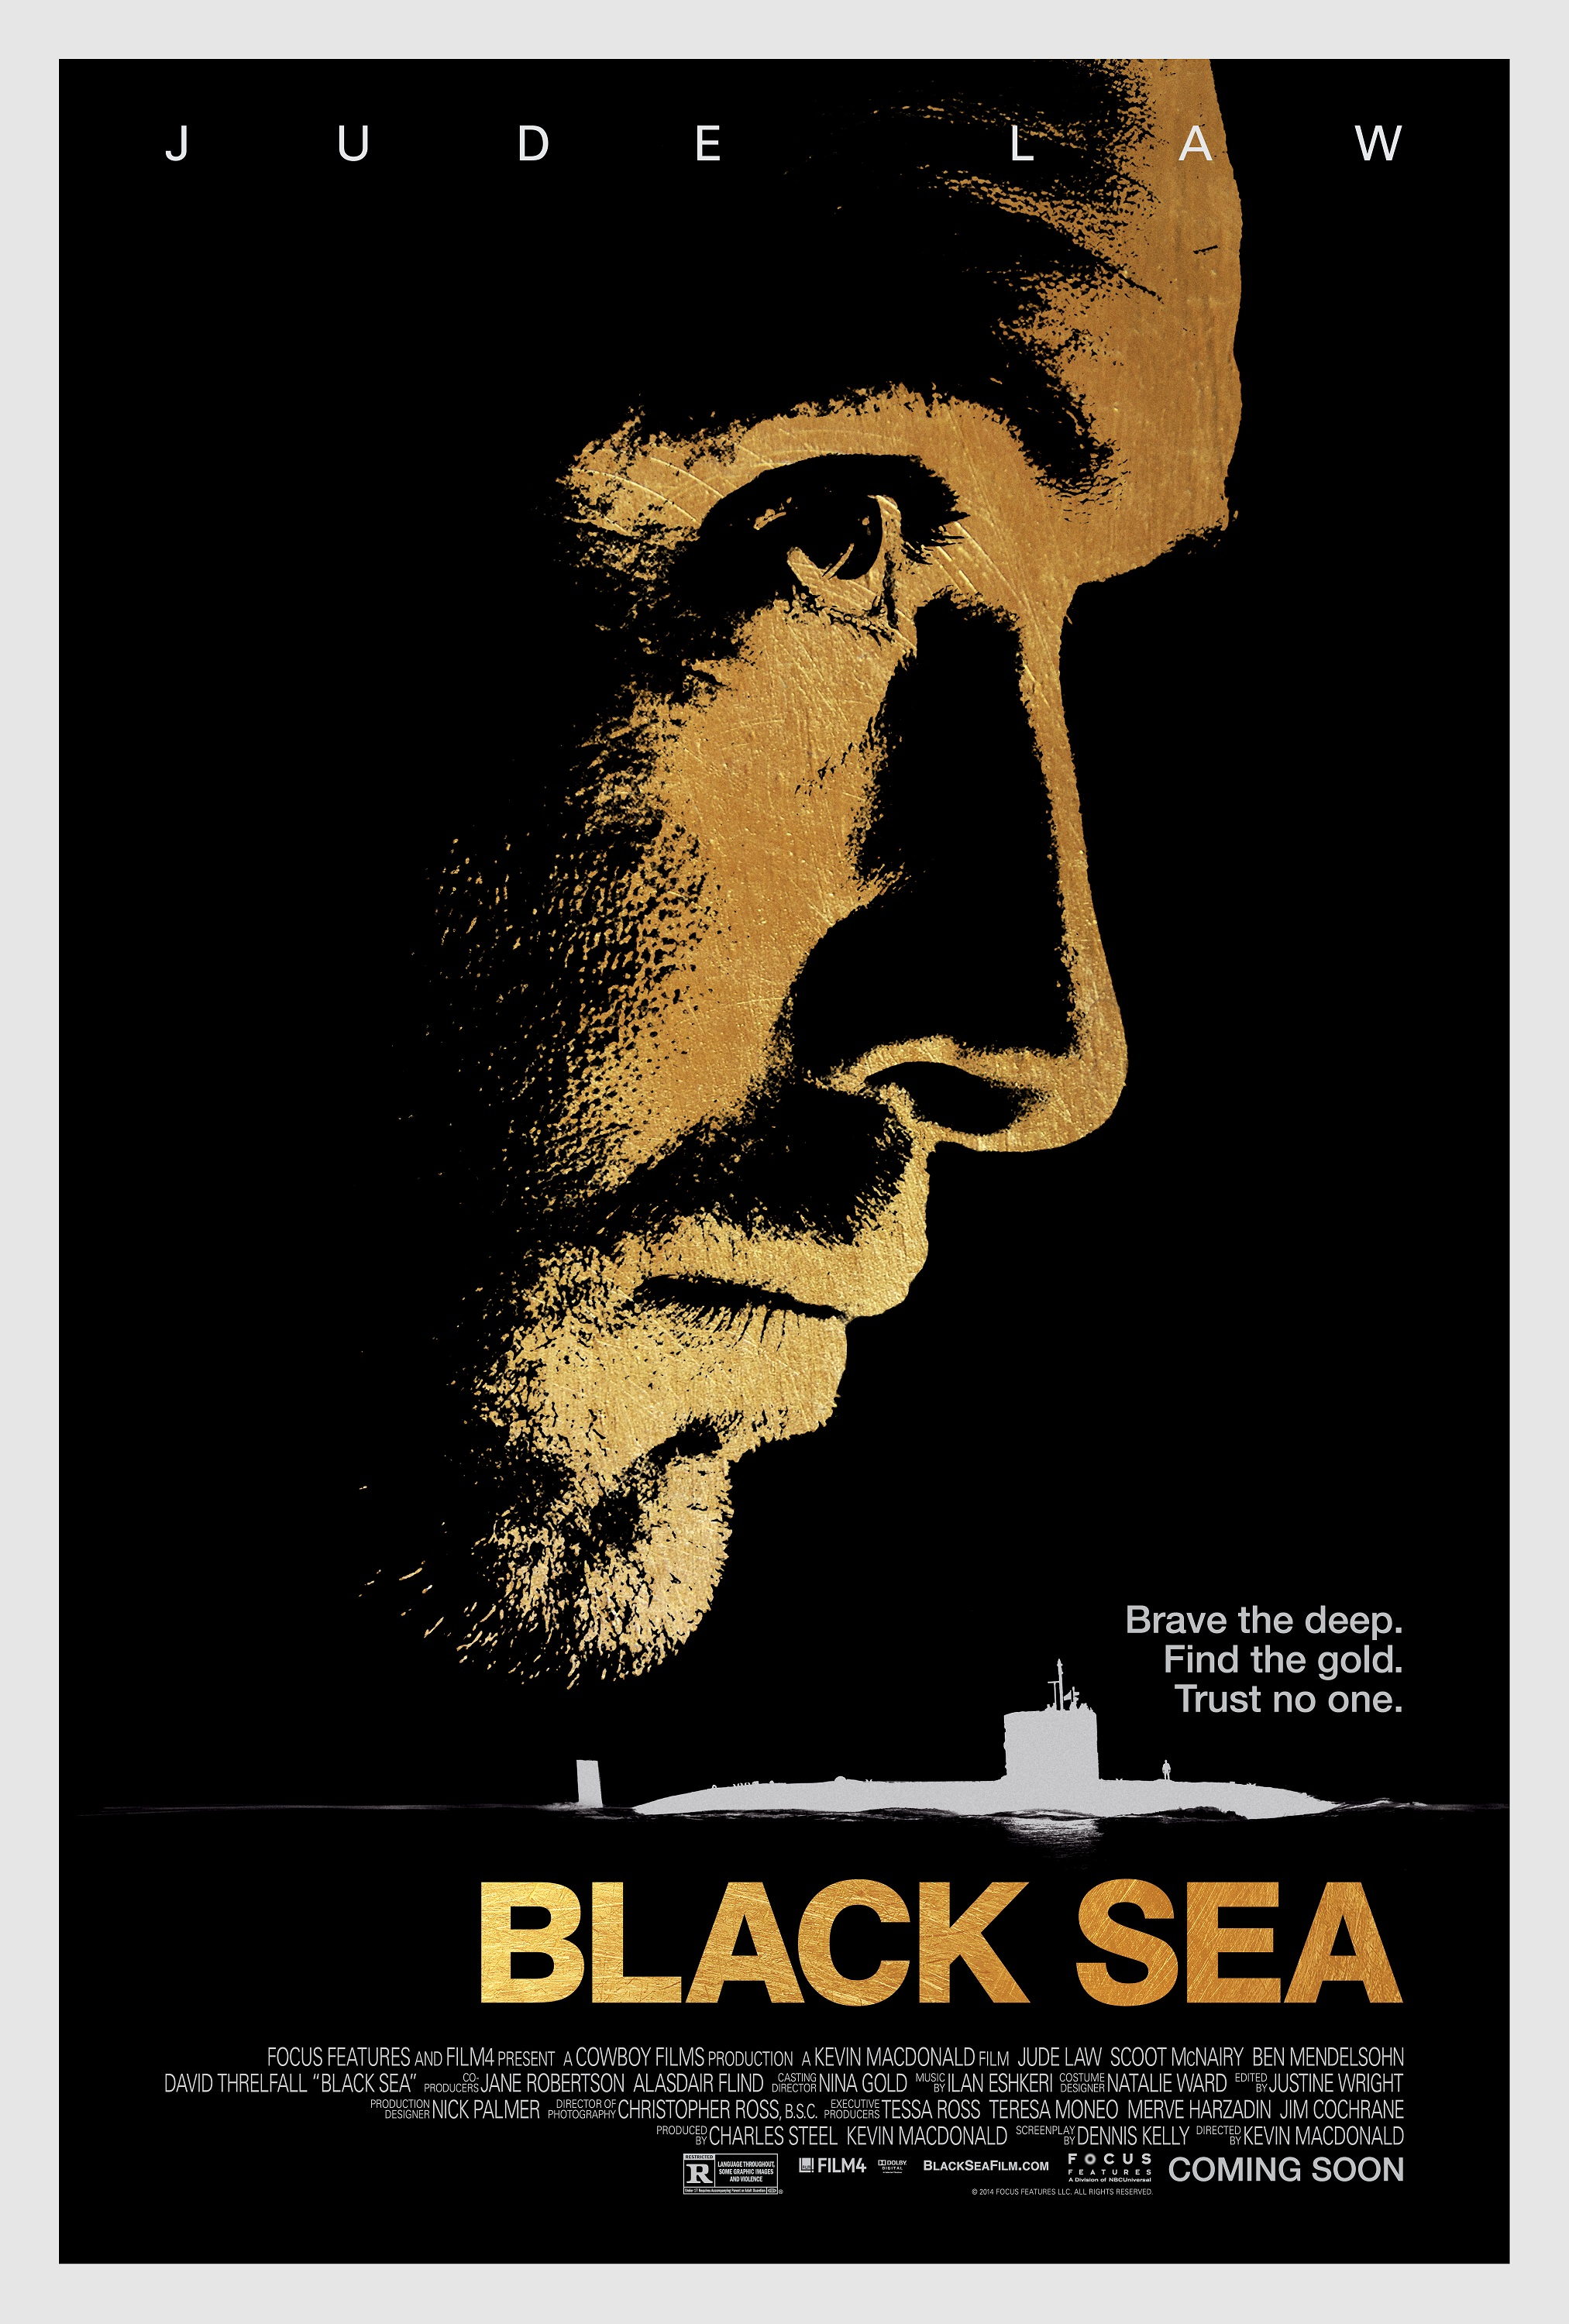 BLACK SEA-Official Poster Banner PROMO XLG-07NOVEMBRO2014-00